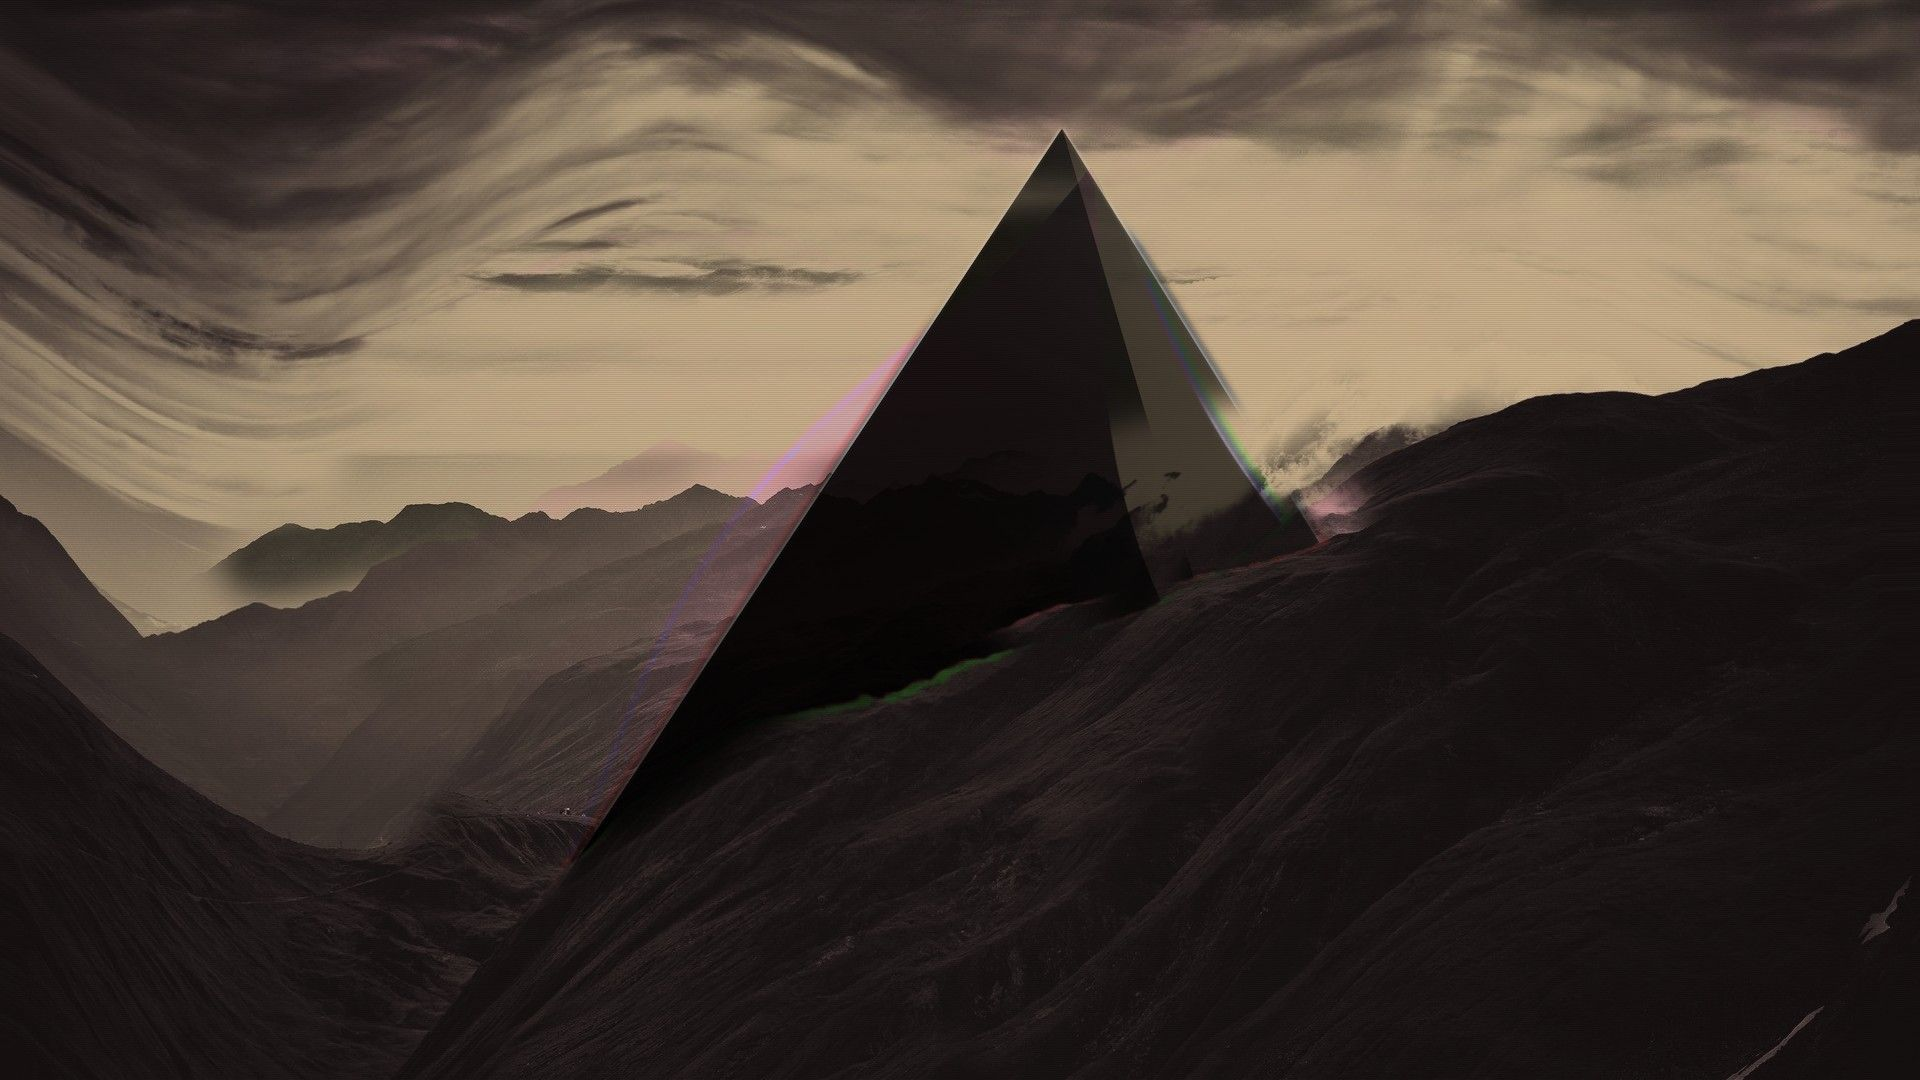 Triangle hd wallpaper for laptop